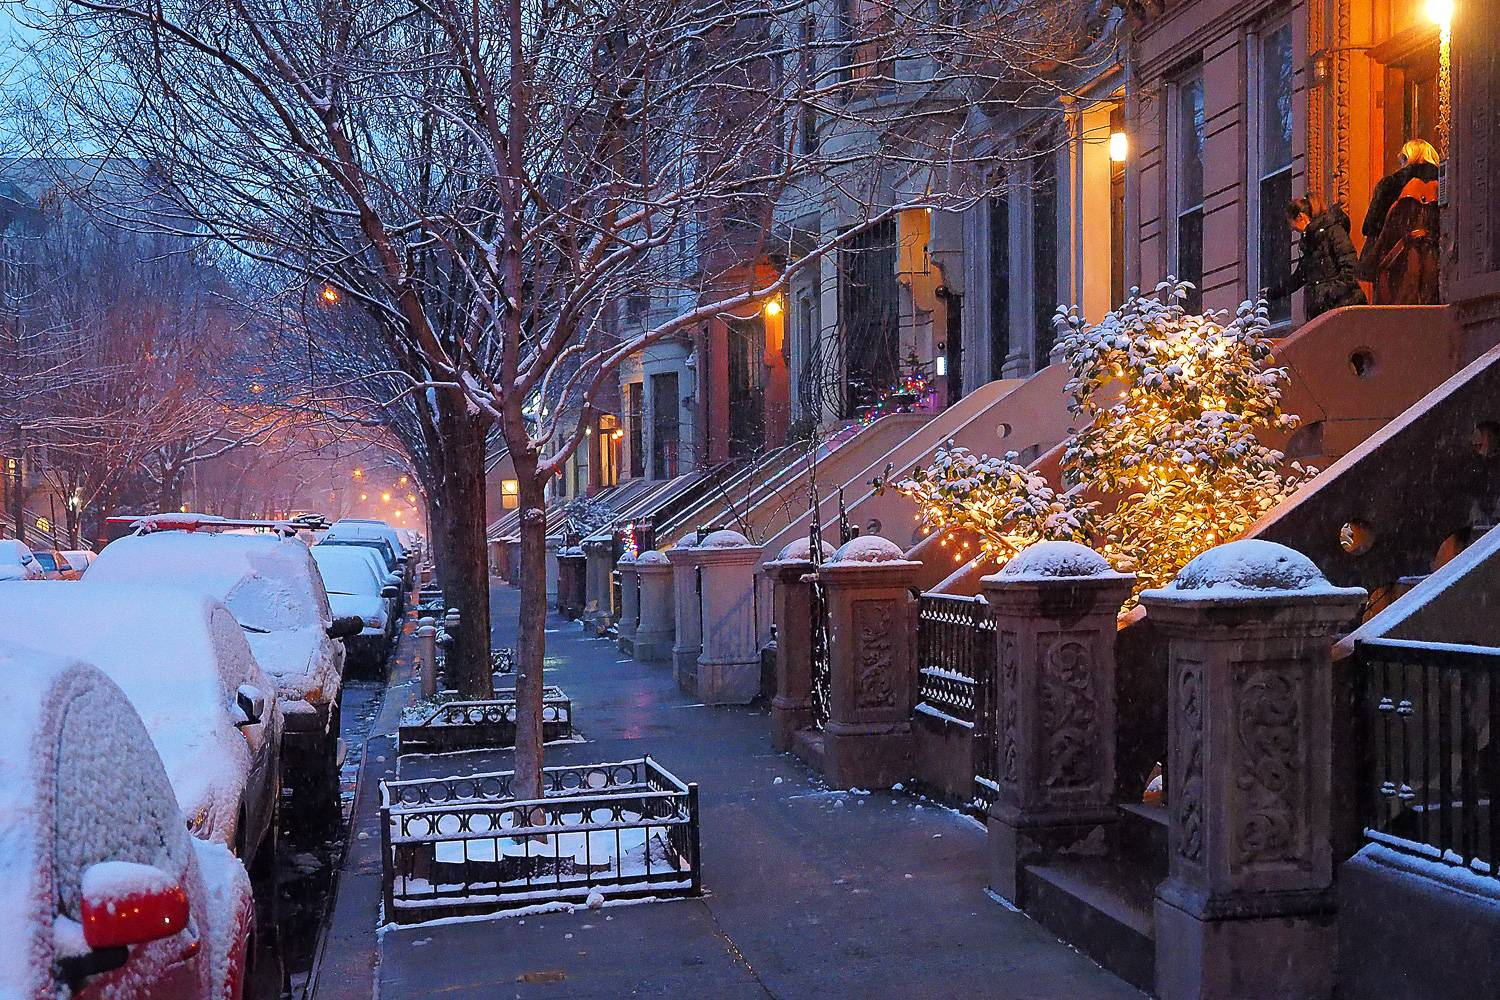 Image of New York City residential street with brownstone homes after a snowfall